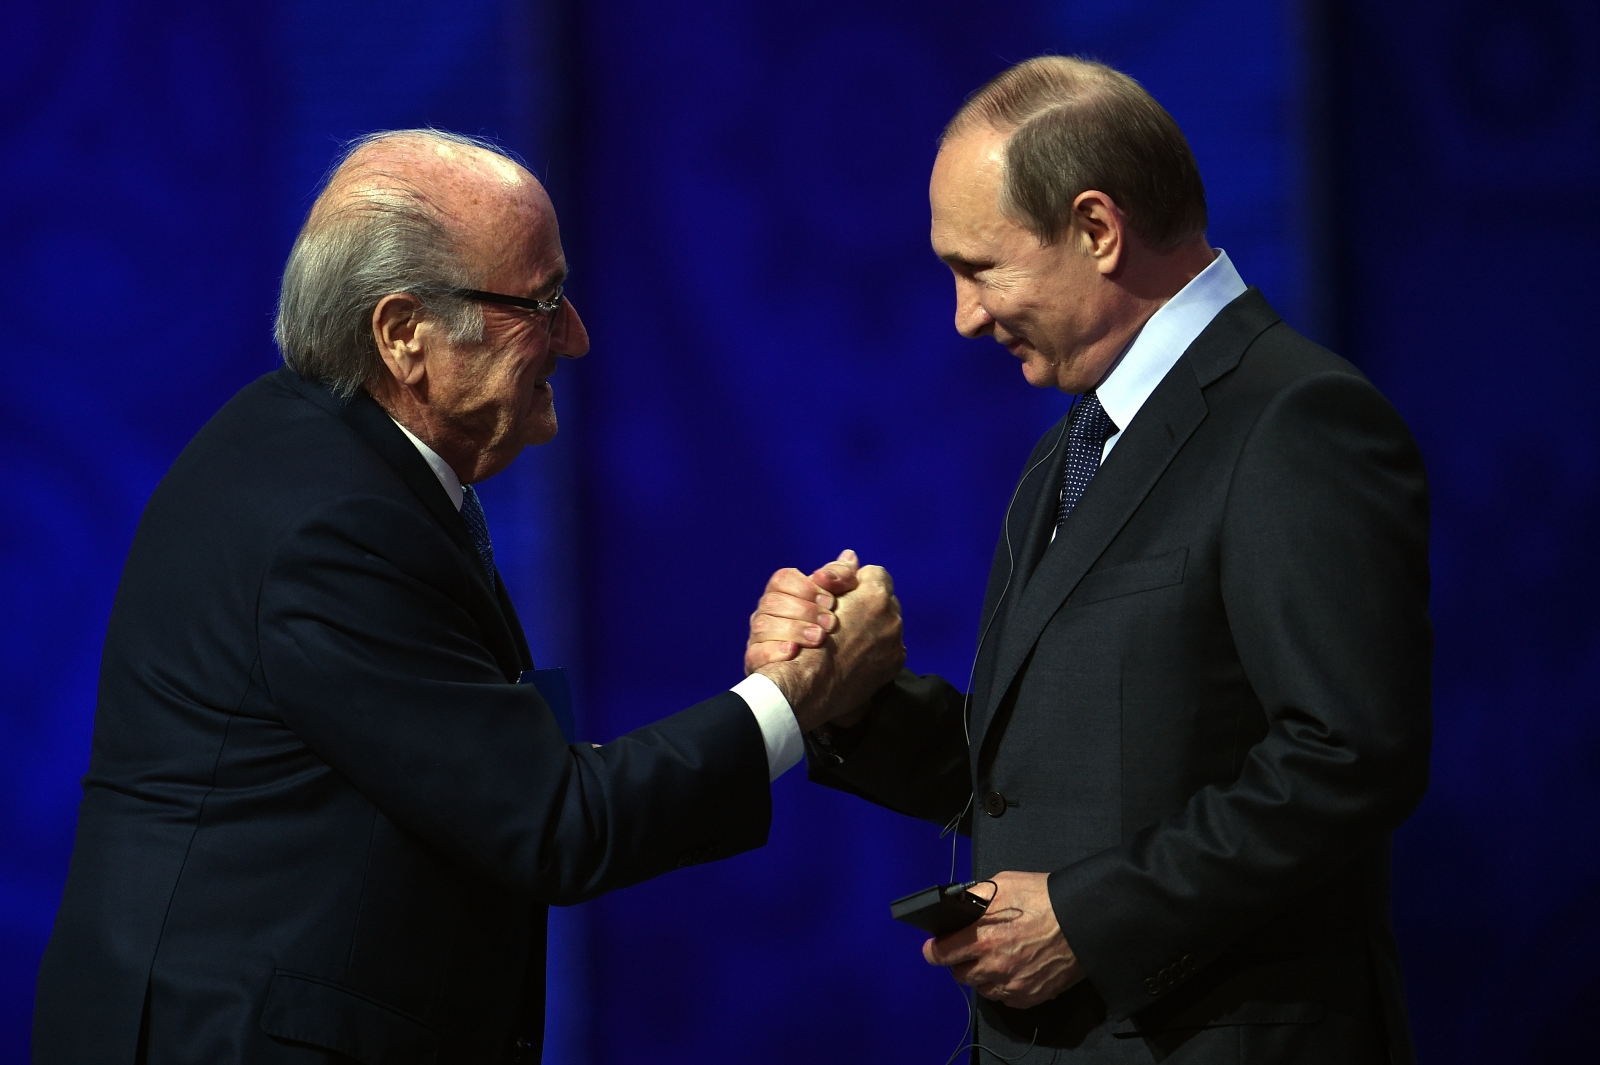 Sepp Blatter and Vladimir Putin at the